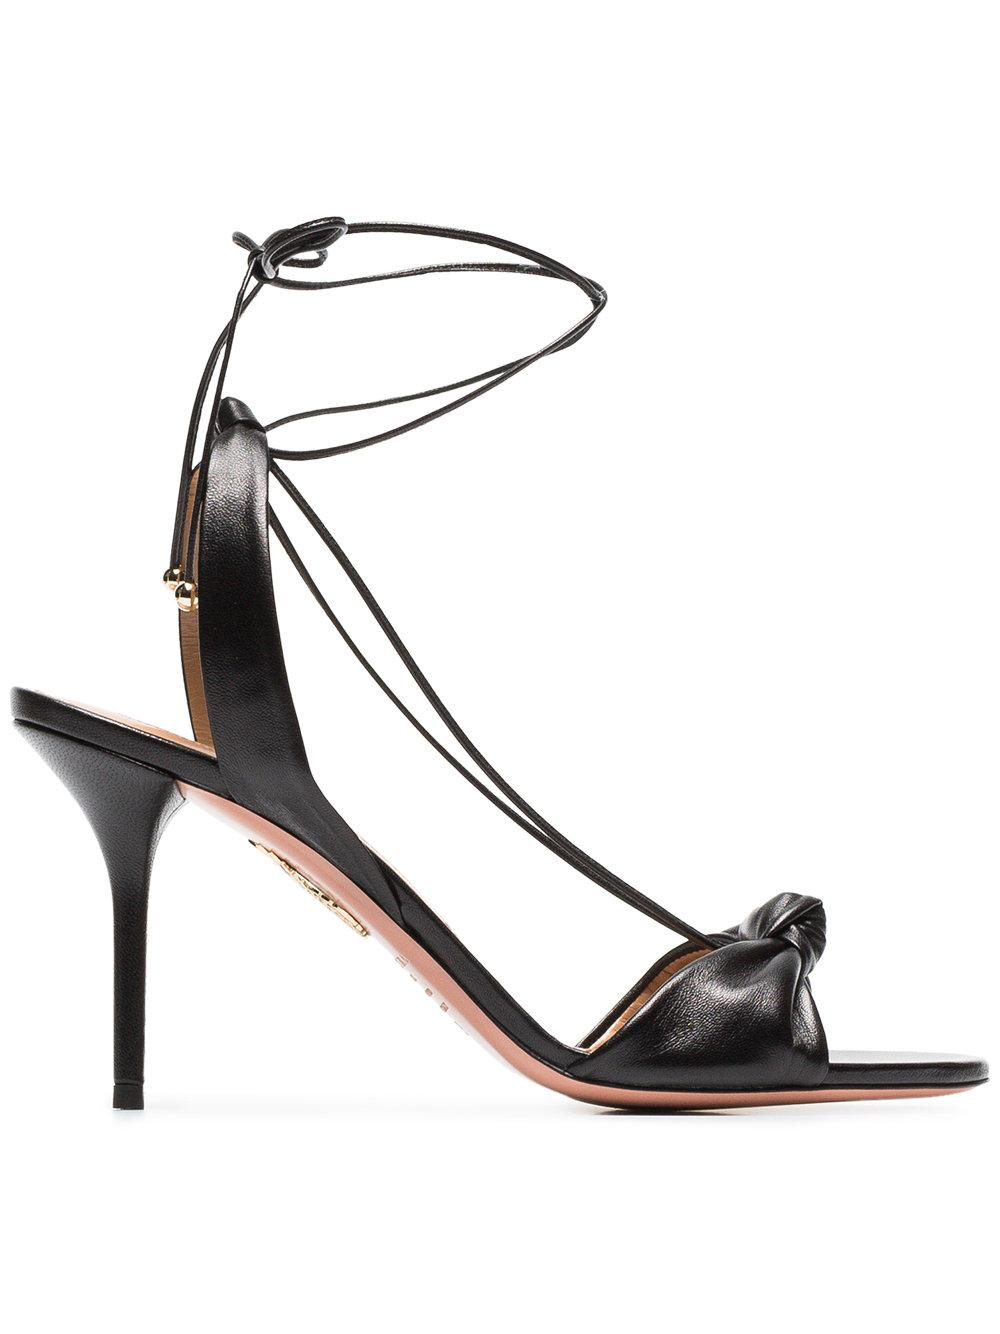 2287a0ff80ab Aquazzura Virginie 85 Knot-Front Leather Sandals In Black